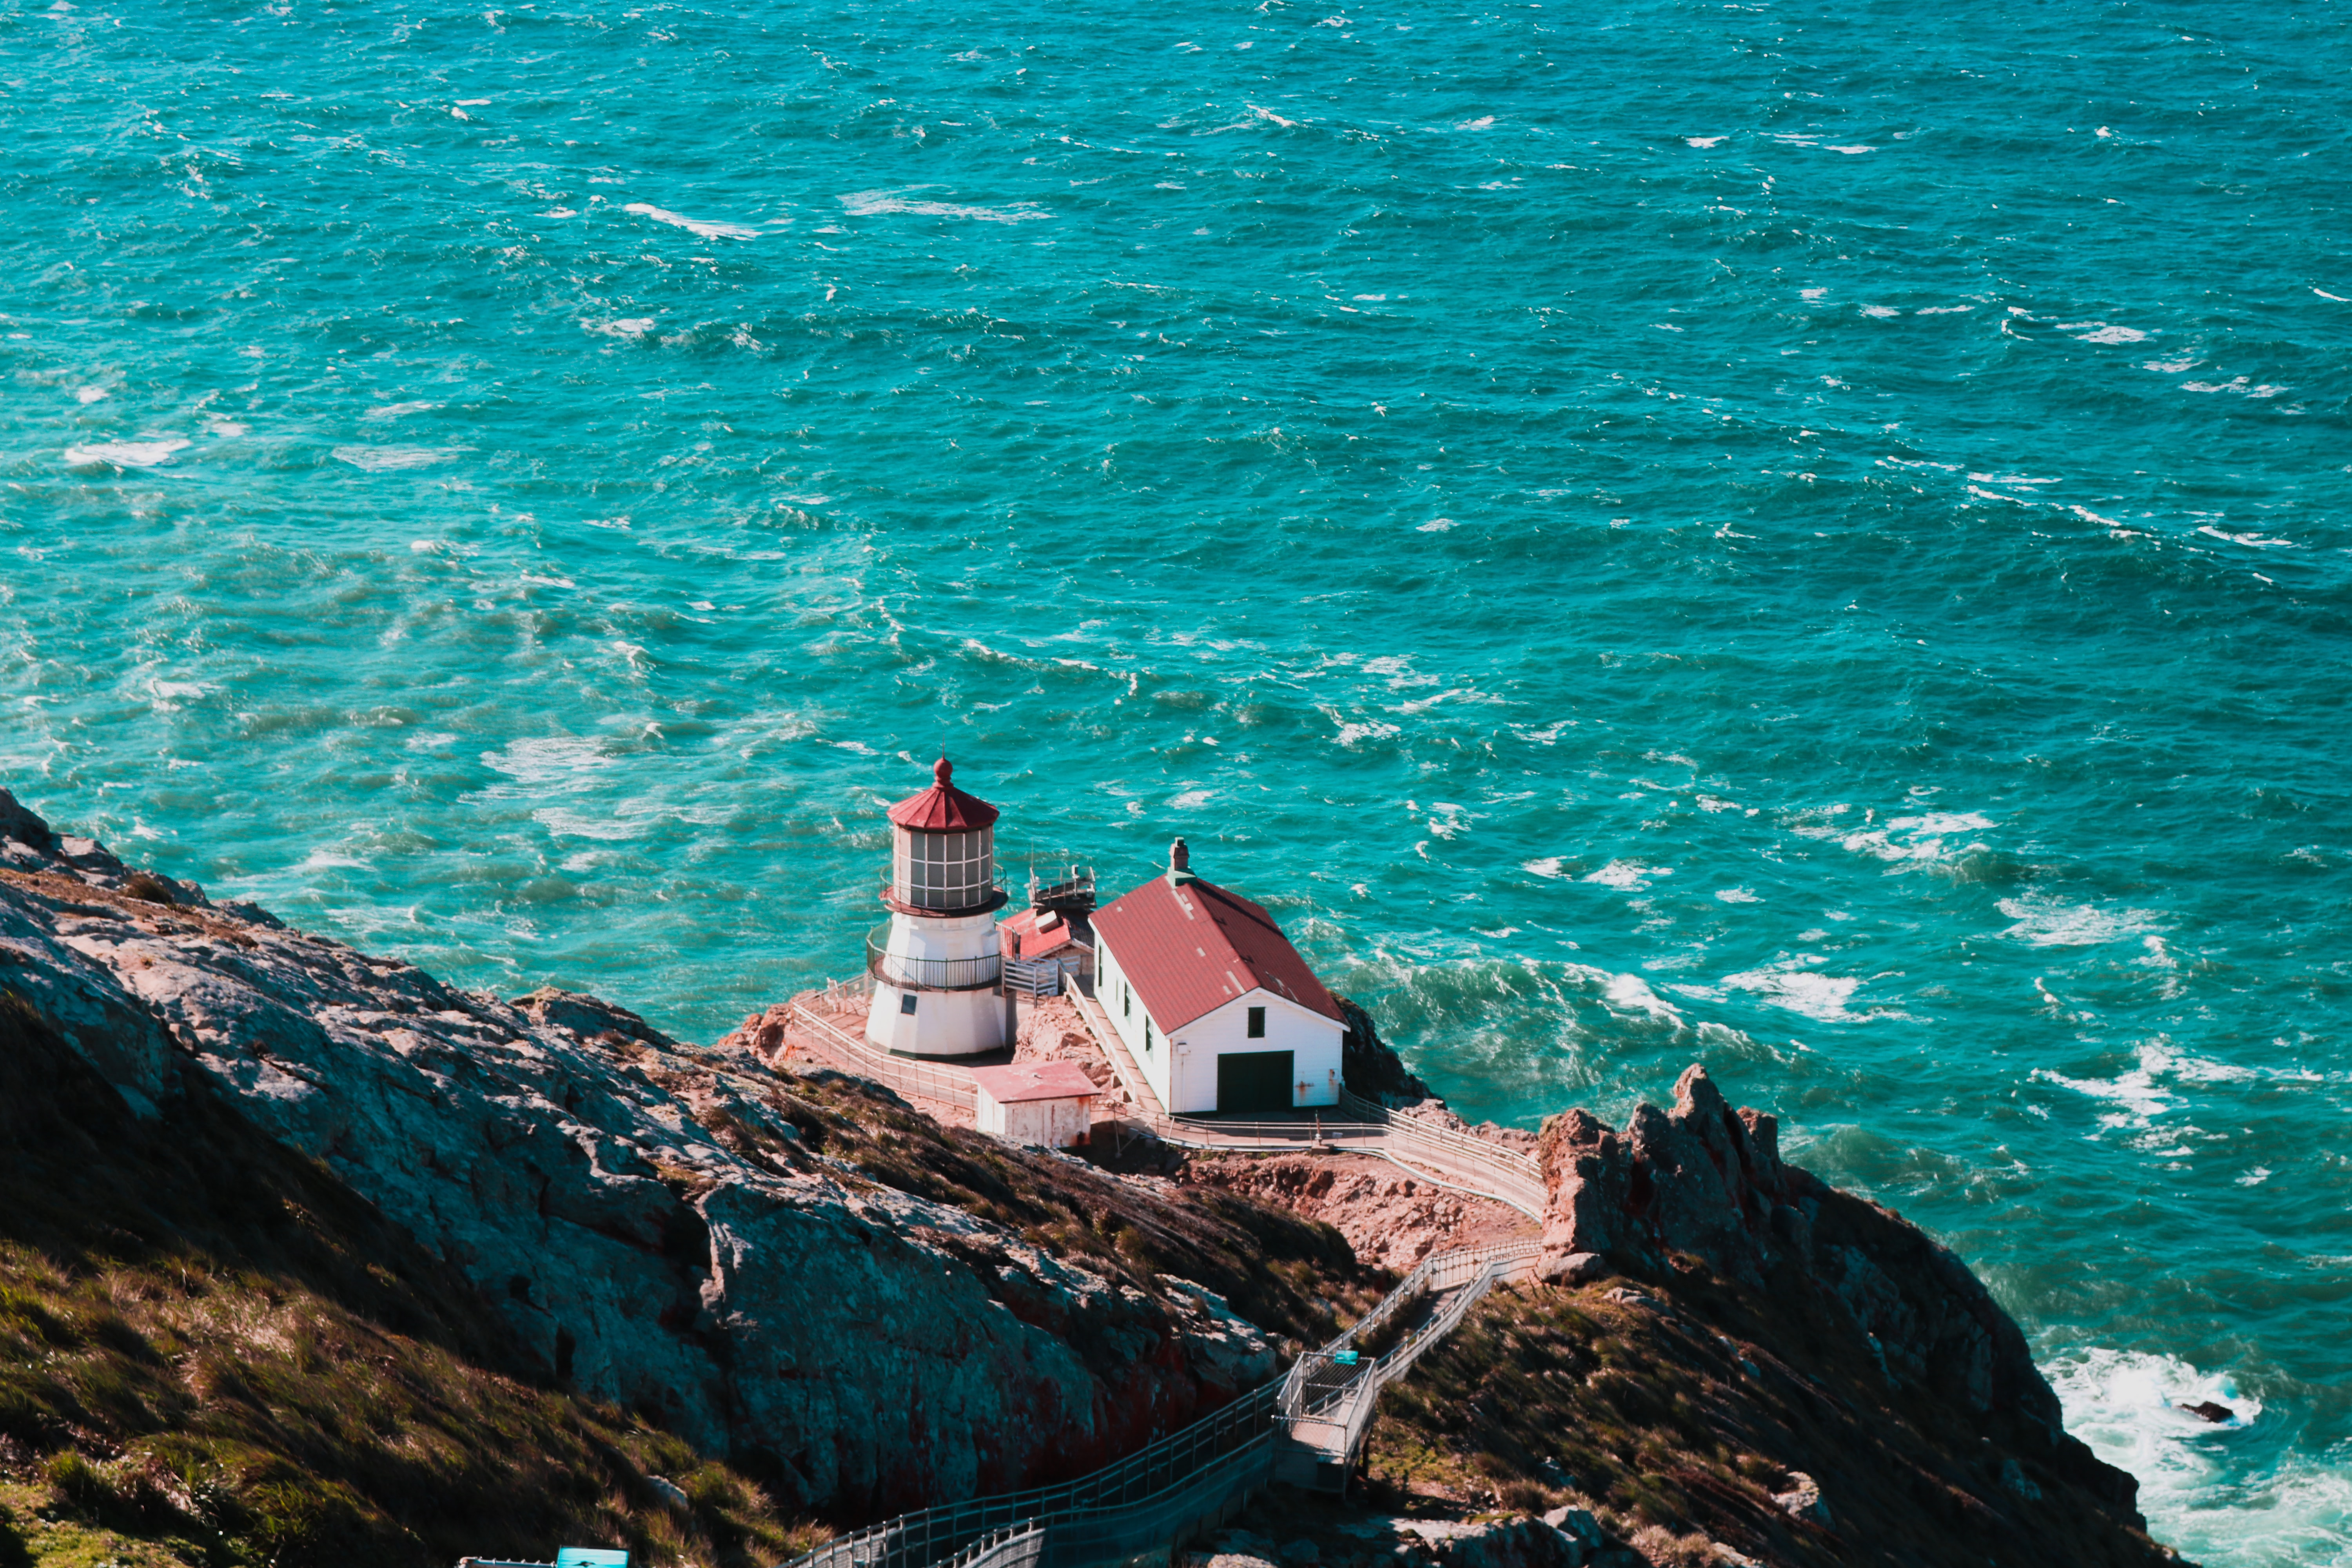 Lighthouse overlooking a turquoise ocean.